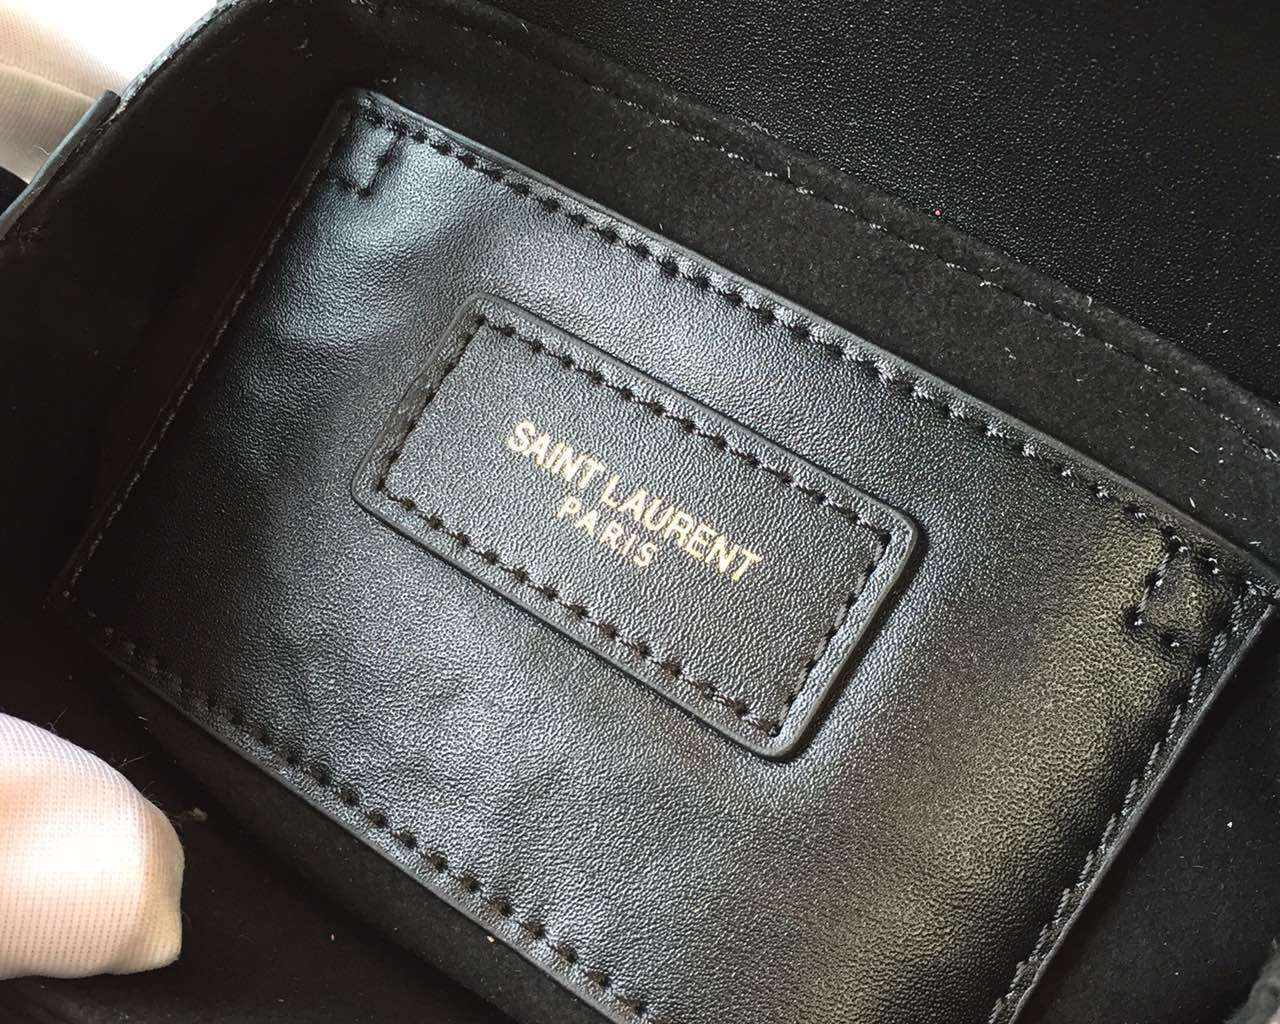 2015 Cheap YSL Out-Sale with Free Shipping-Saint Laurent Classic Small Lulu Leather Bag in Black Calfskin Leather